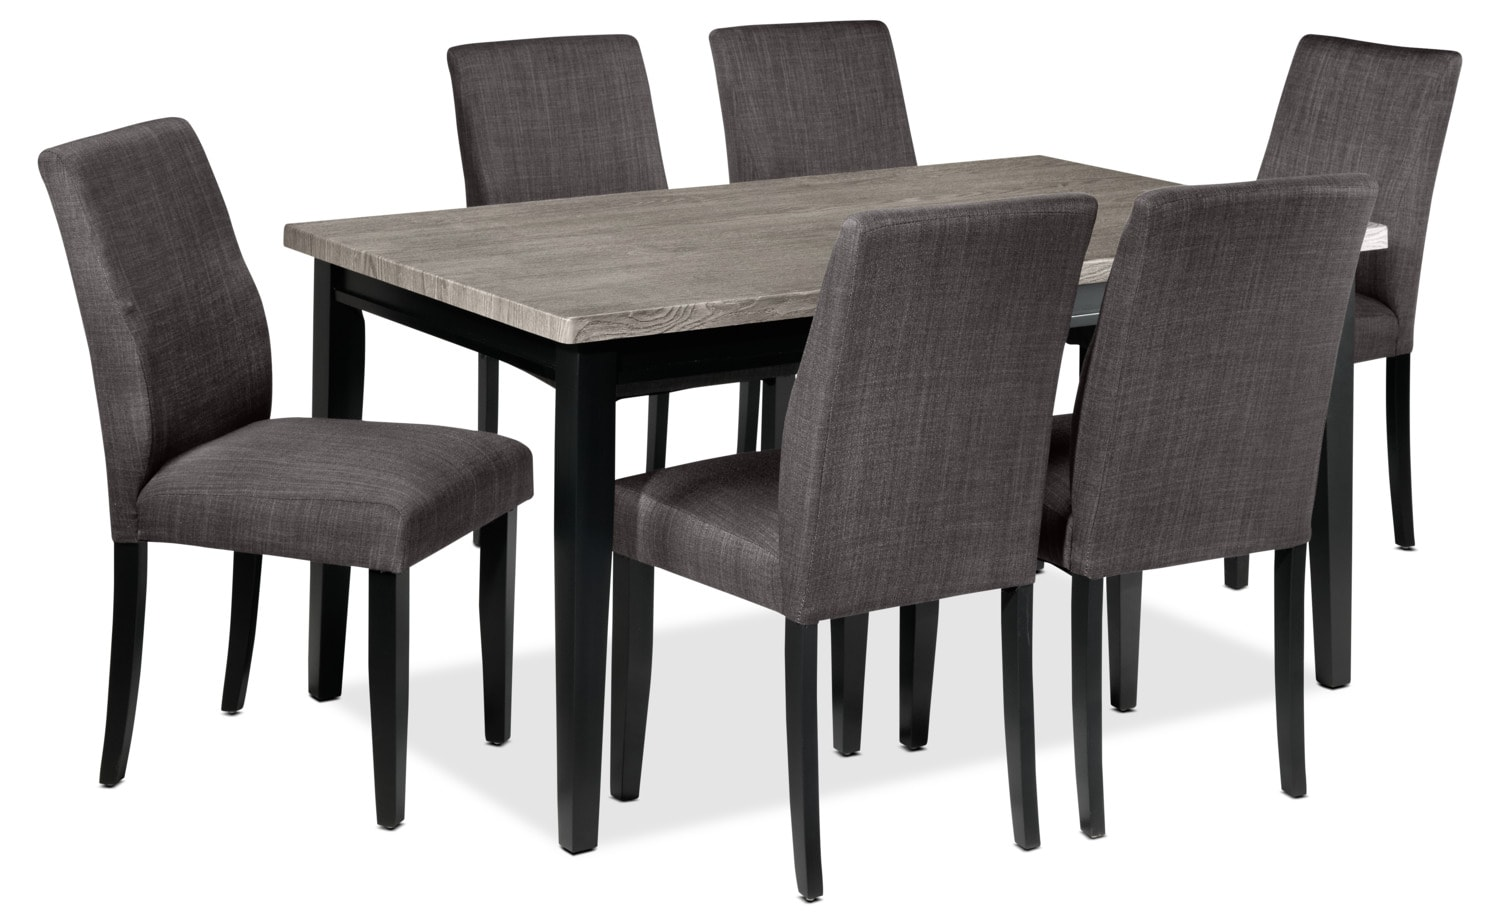 Alfred 7-Piece Dinette Set - Grey and Charcoal